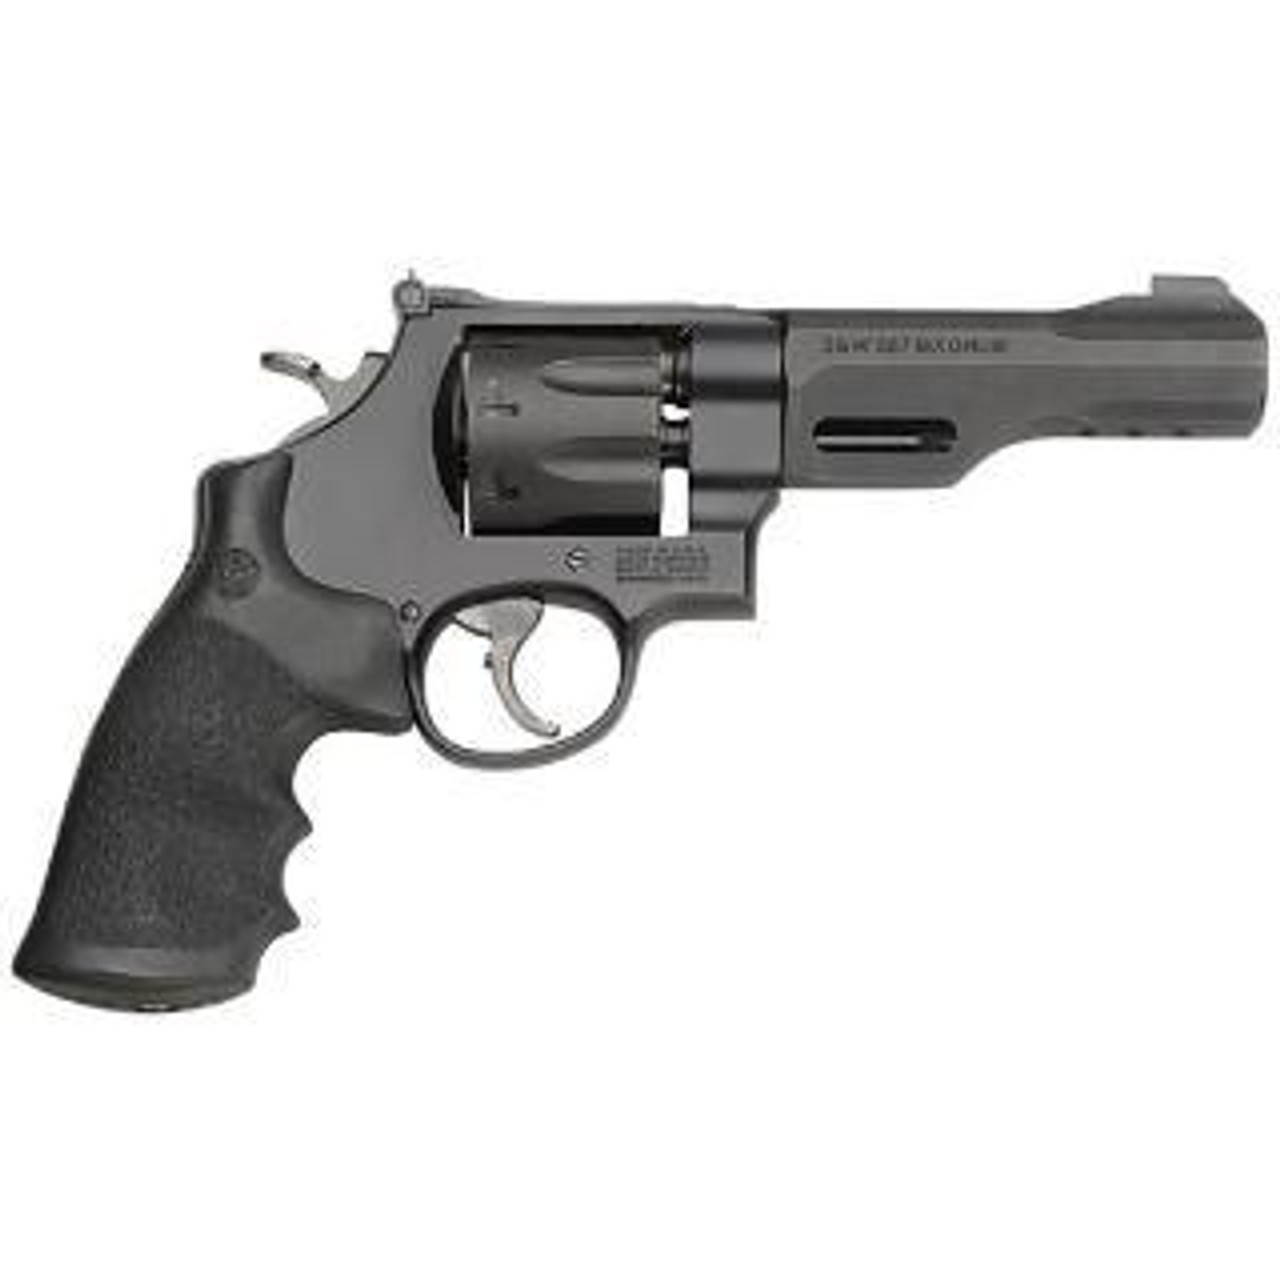 Smith & Wesson 327 TRR Performance Center - California Legal .357